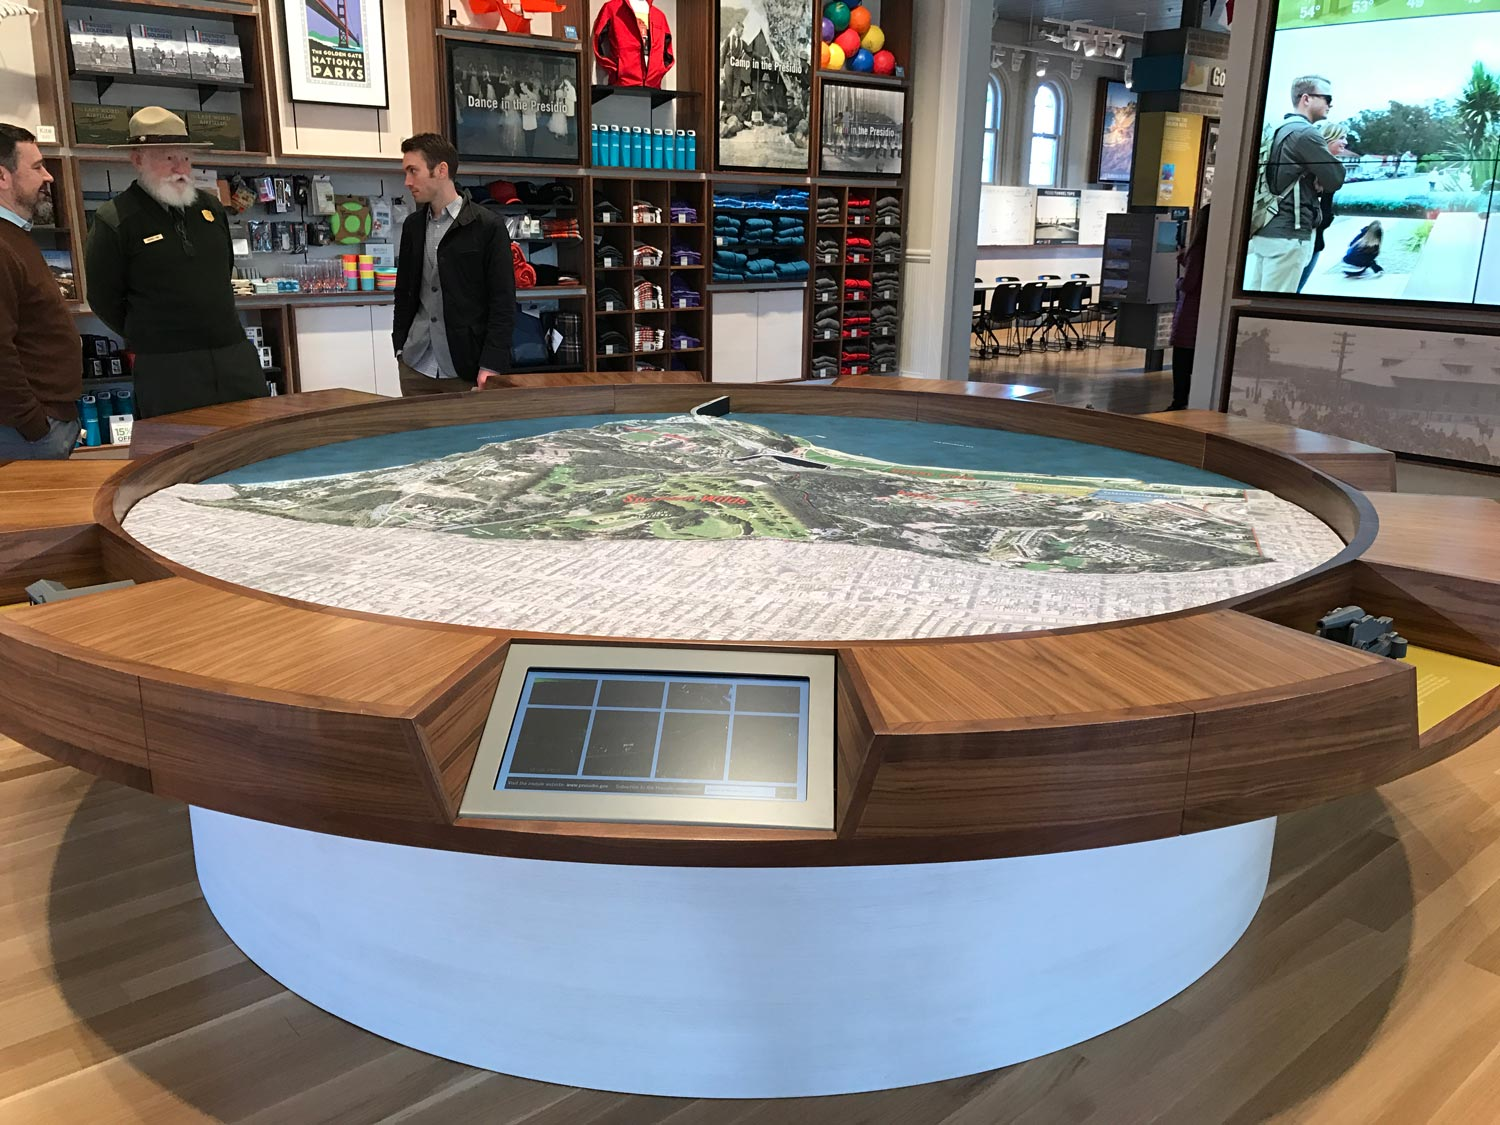 Large-scale Presidio model surrounded by touchscreen panels that help visitors select destinations to visit during their day in the park.